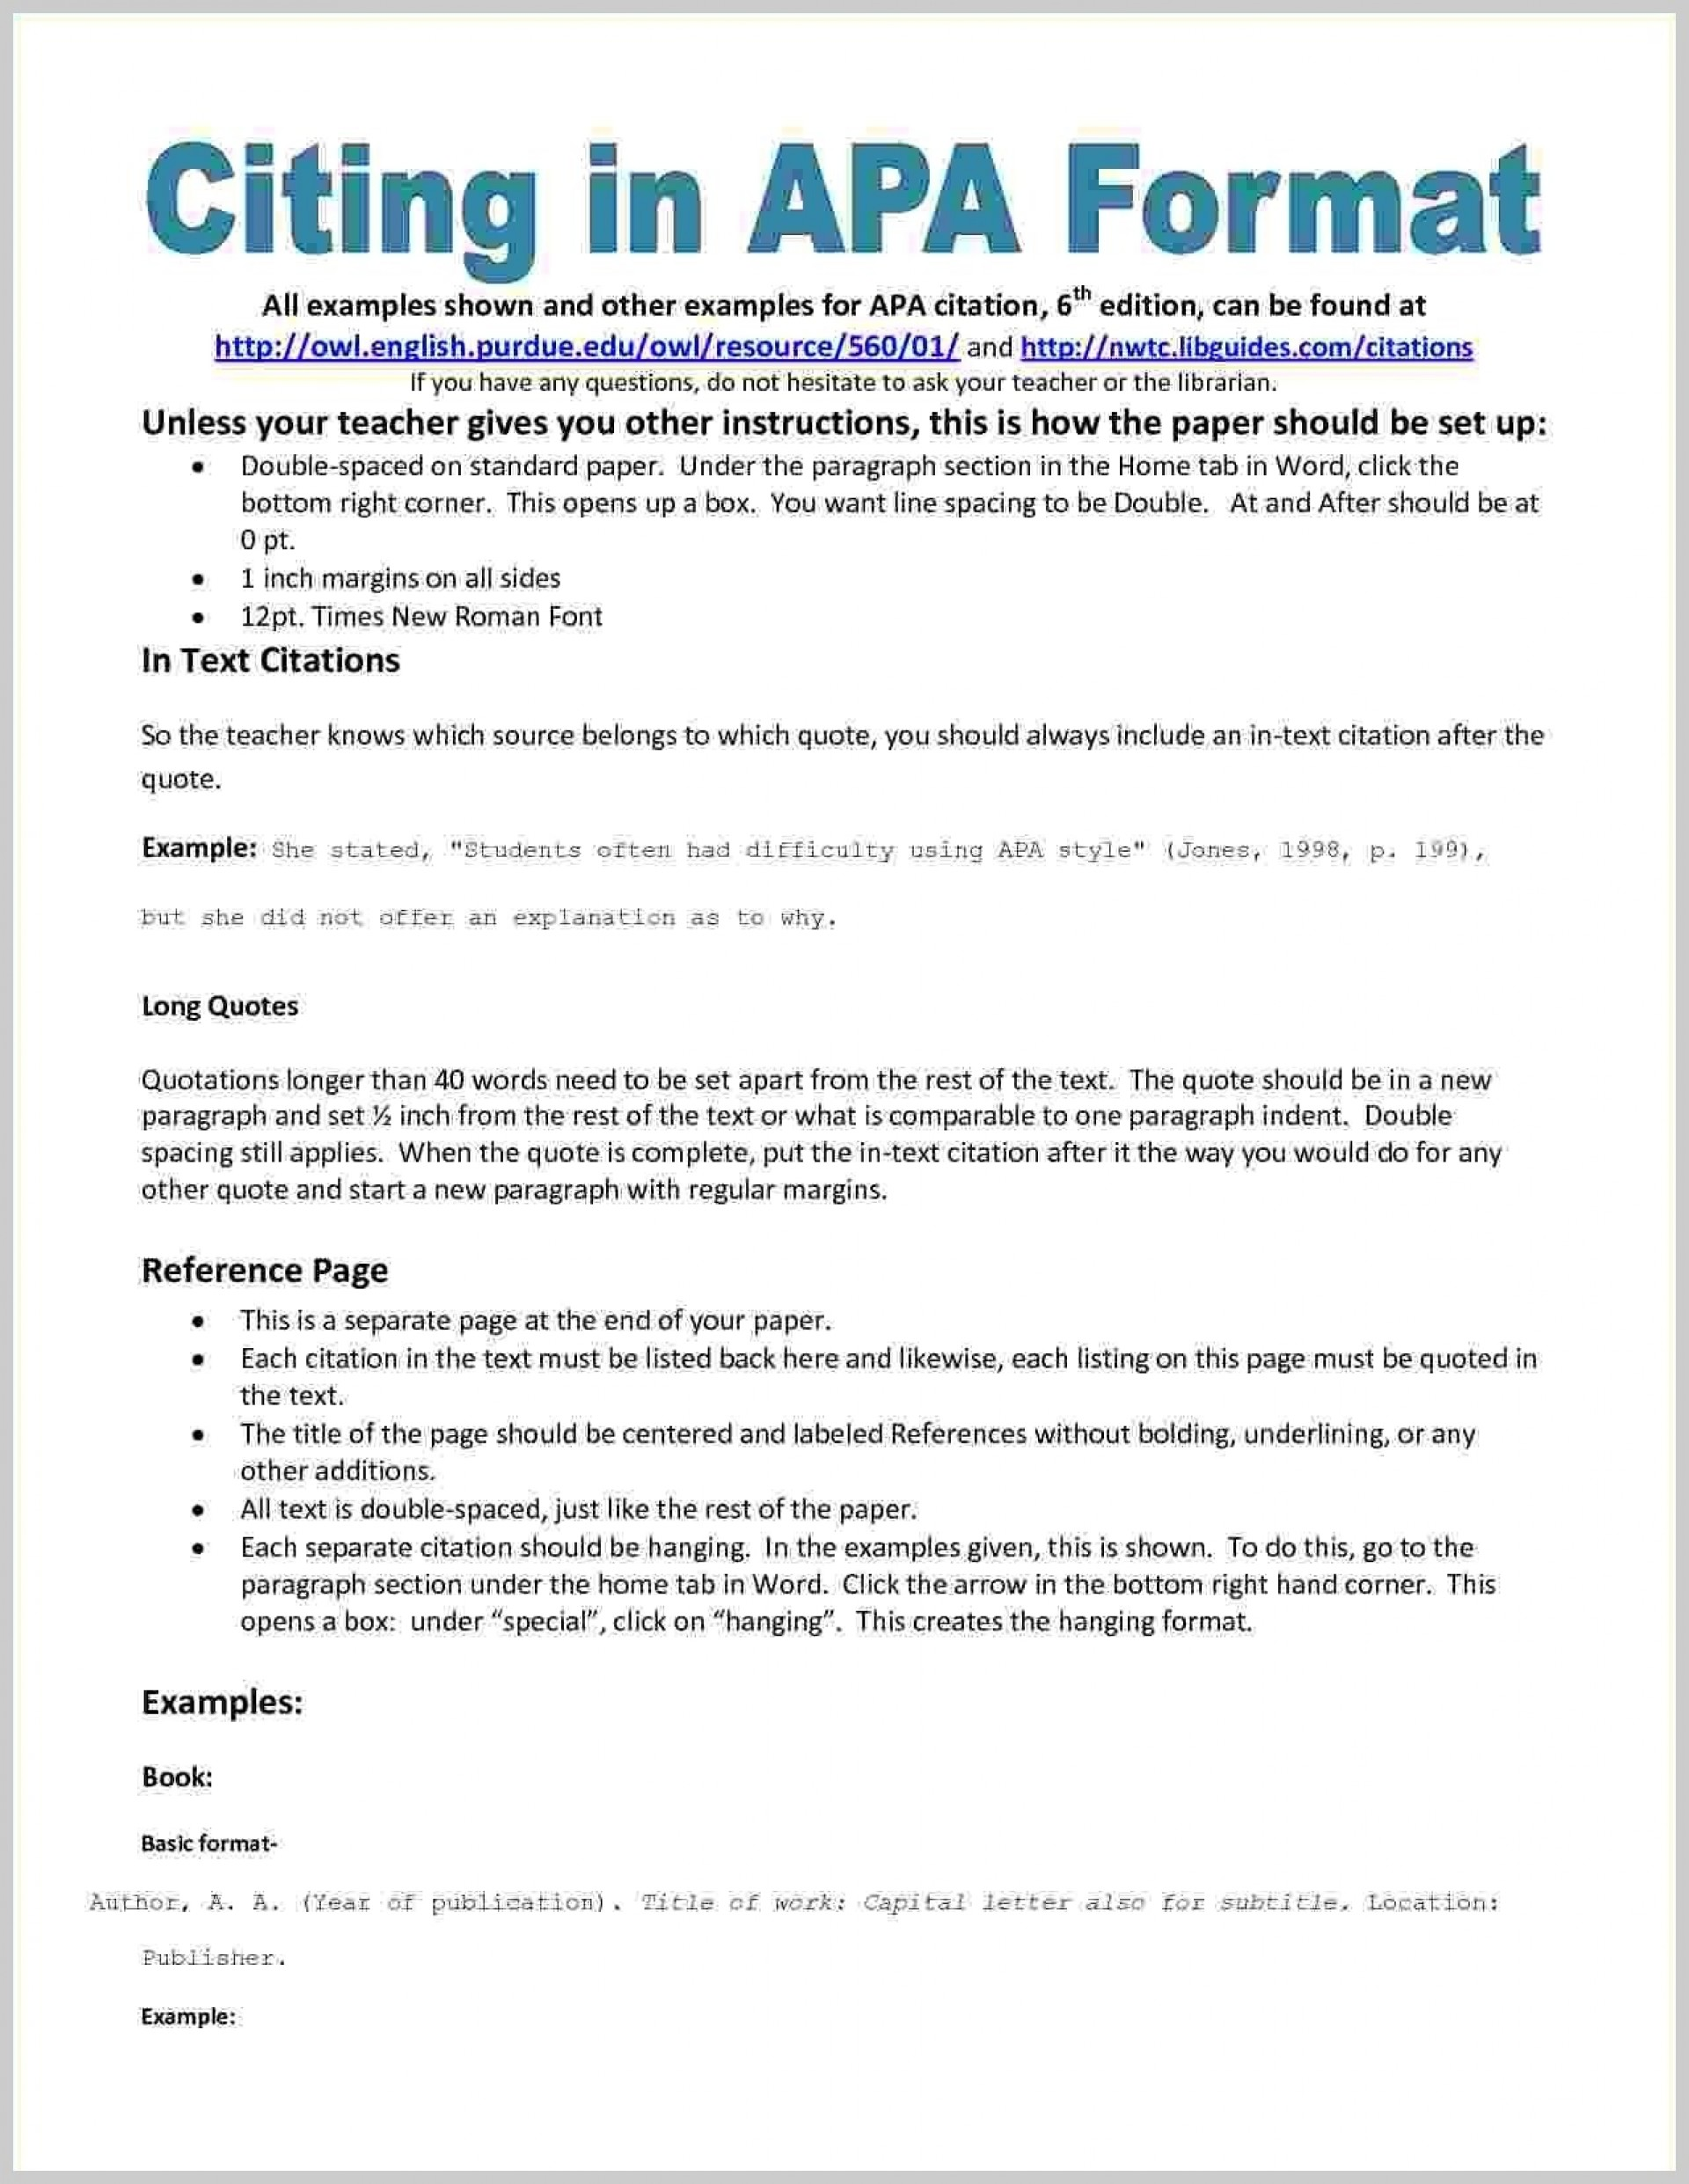 002 Research Paper Database Security Apa Style Reference In Text Citation Mla Examples Toreto Co Striking Ieee Pdf - Draft 1920